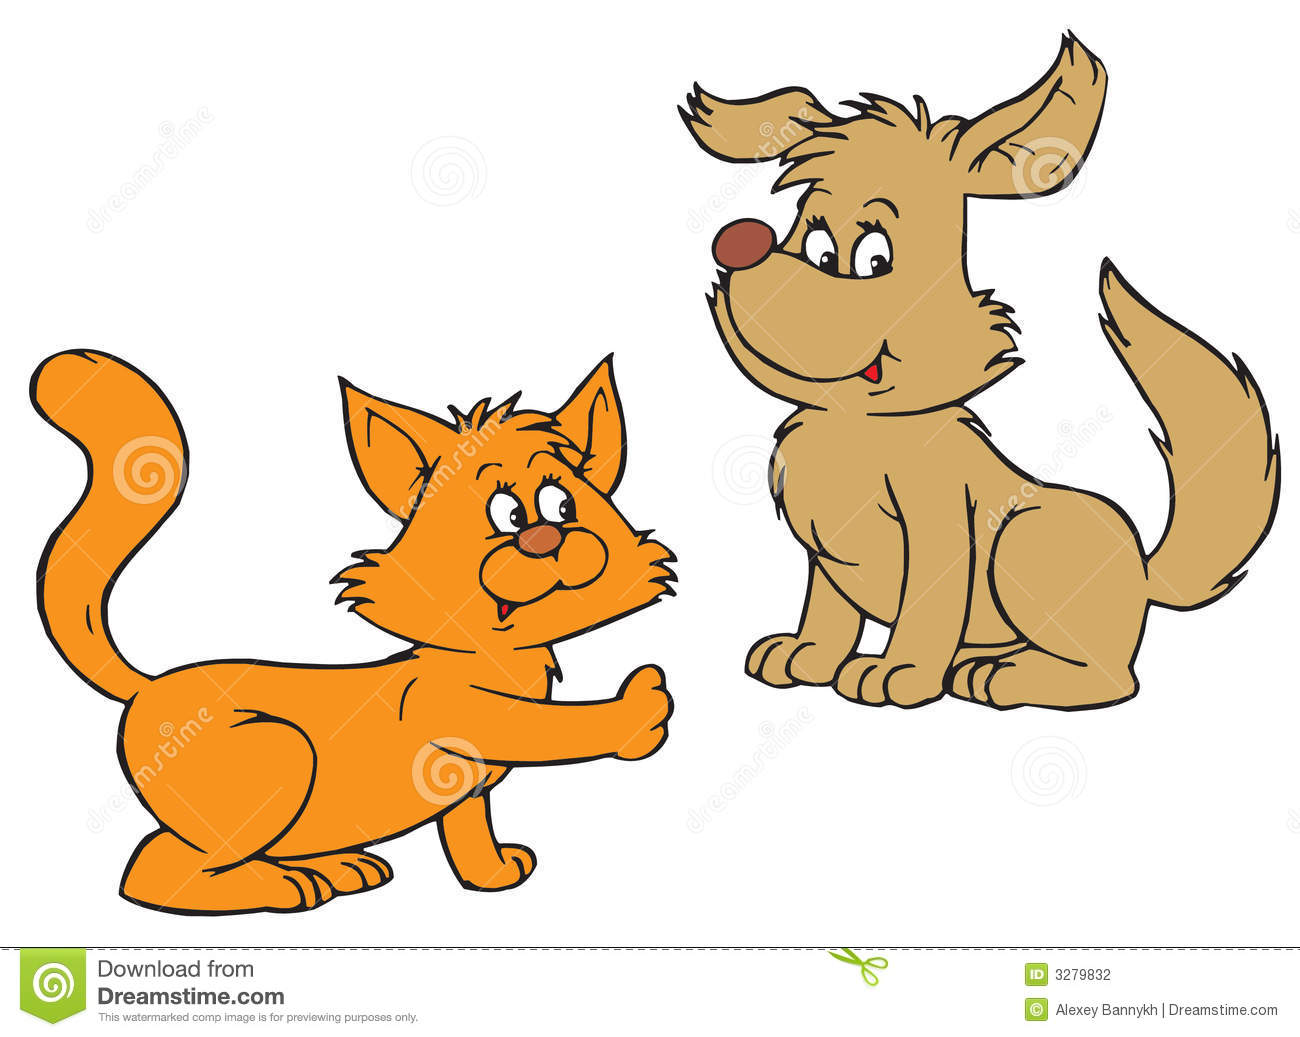 Dog and cat clip art free